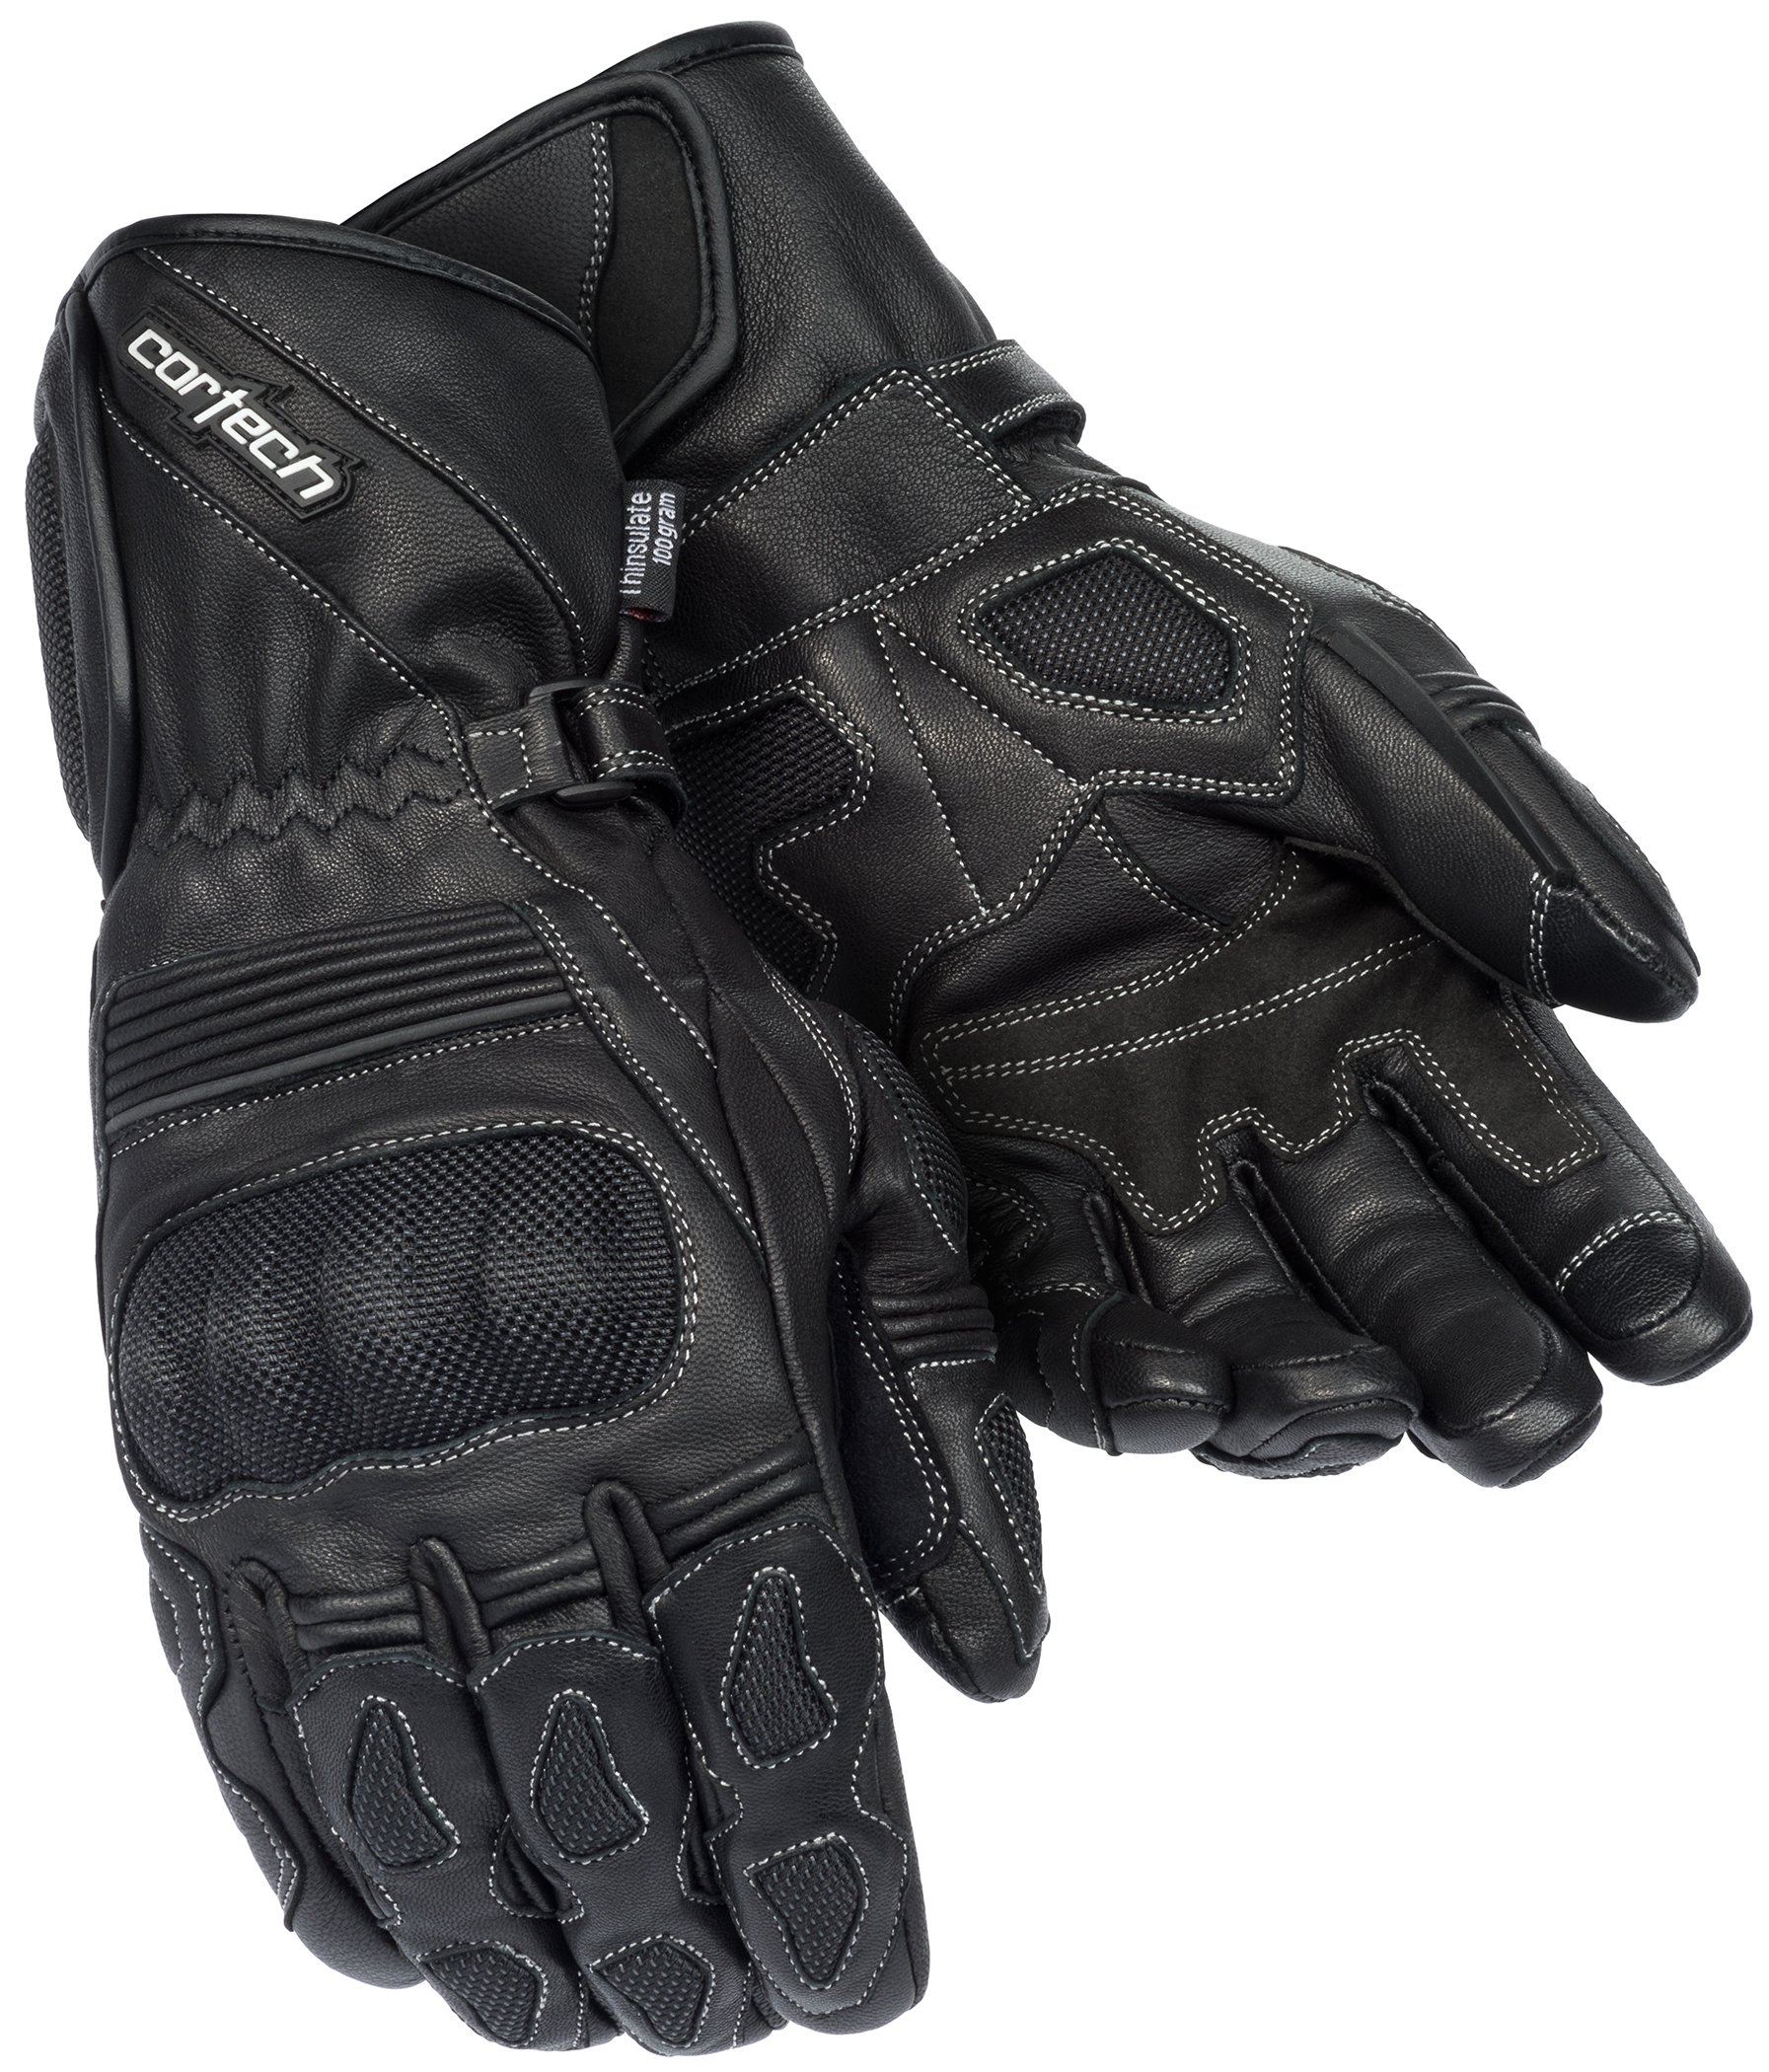 Cortech Men's Scarab 2.0 Winter Motorcycle Gloves (Black, X-Large) by Cortech